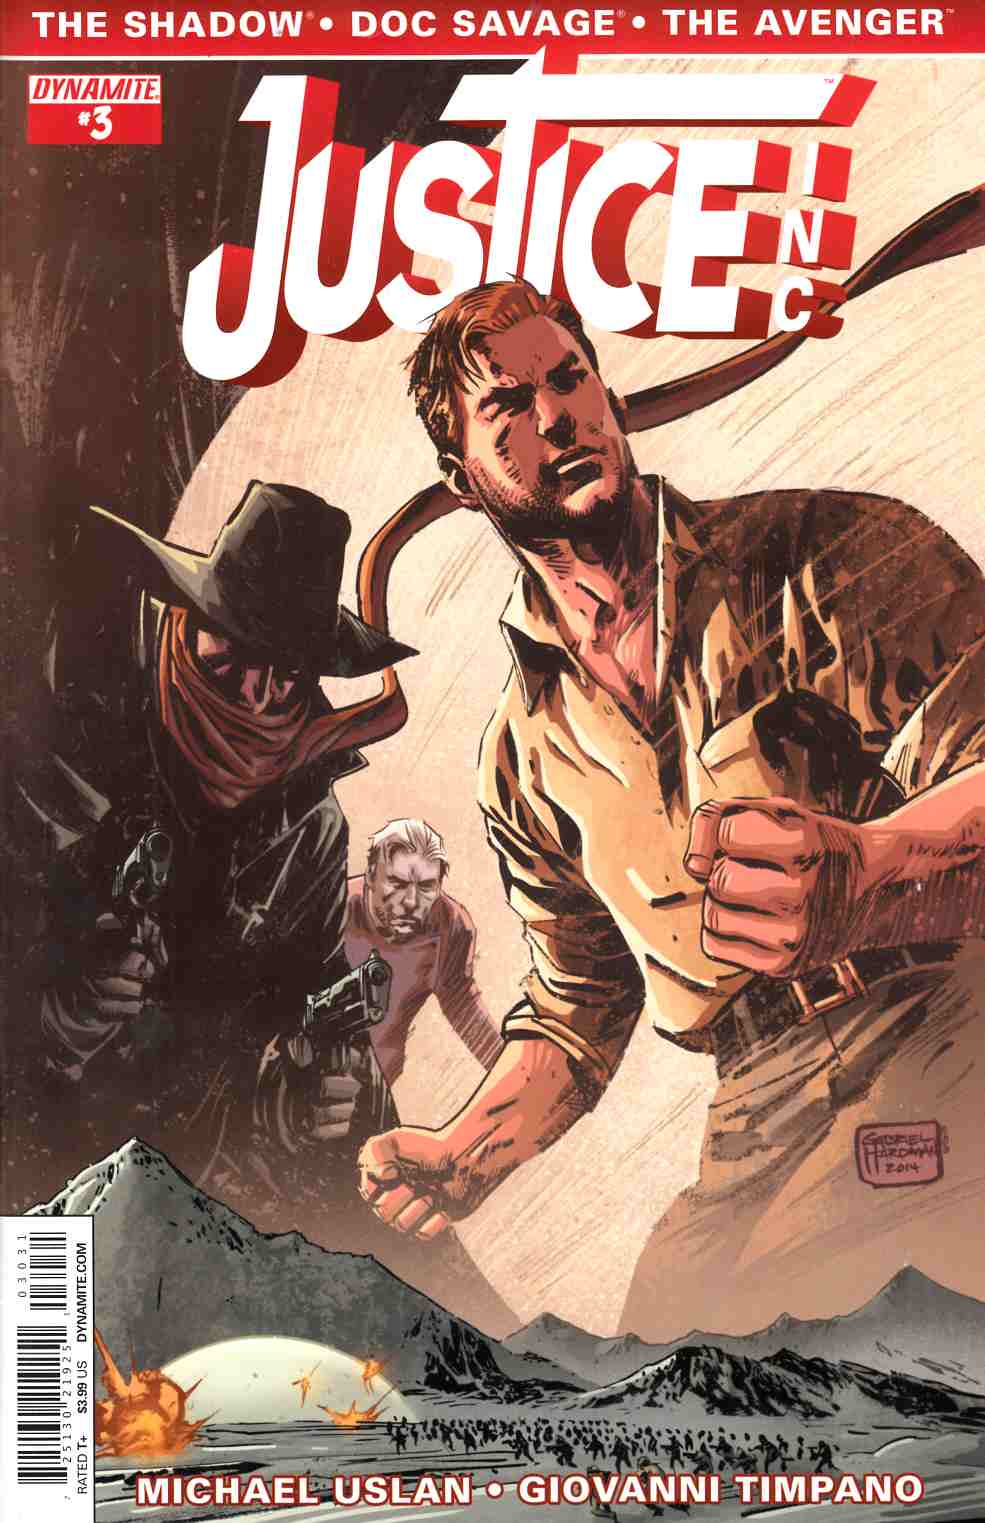 Justice Inc #3 Cover C- Hardman [Comic] THUMBNAIL